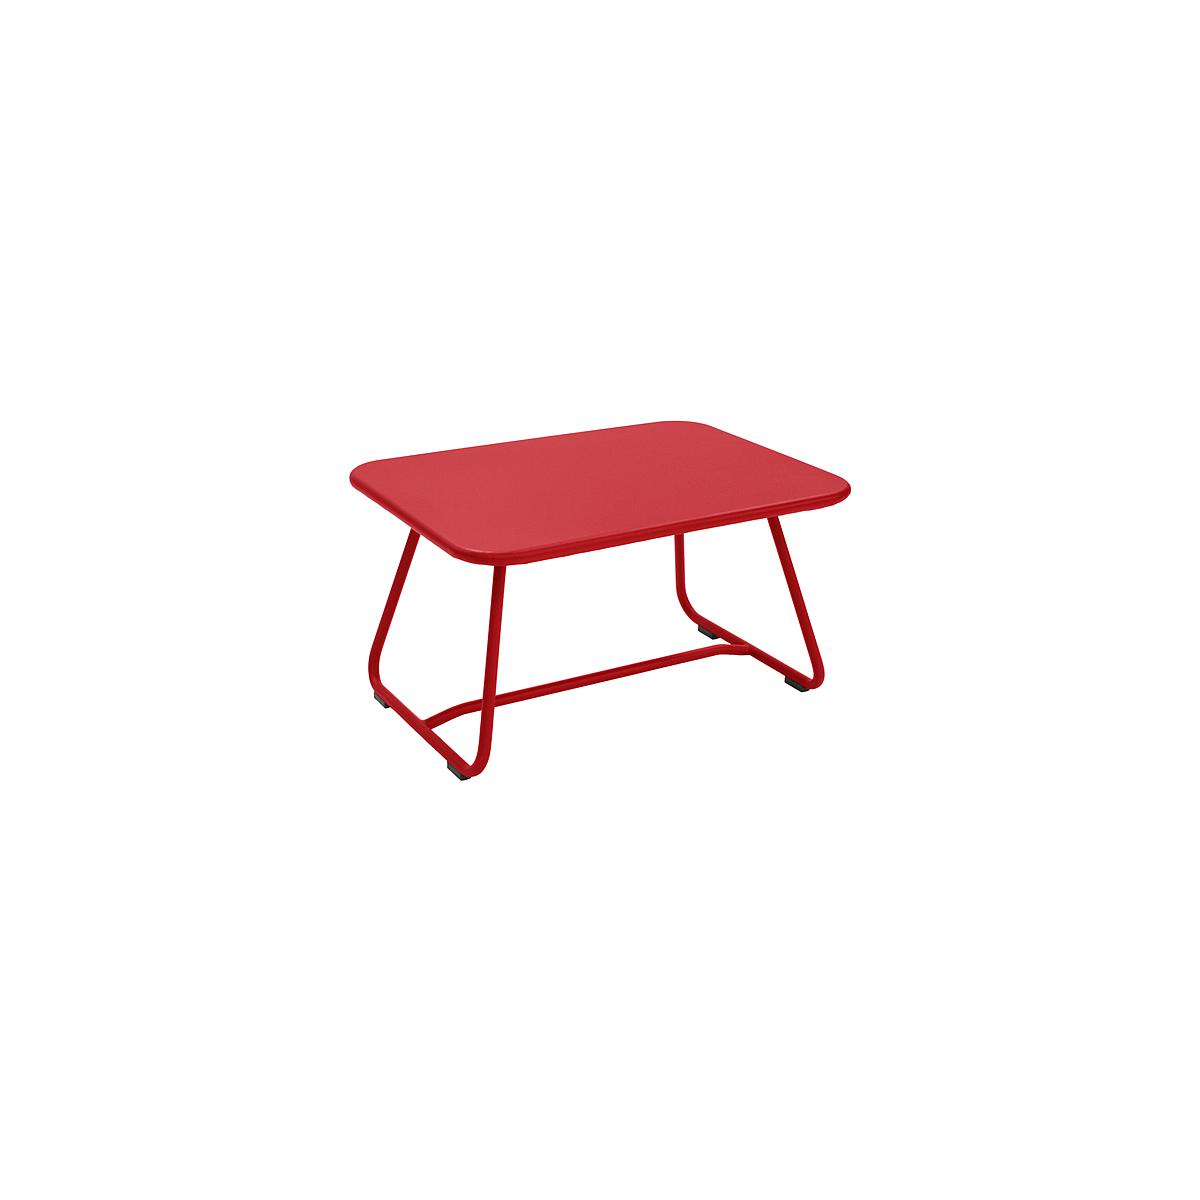 SIXTIES by Fermob Table basse Rouge coquelicot